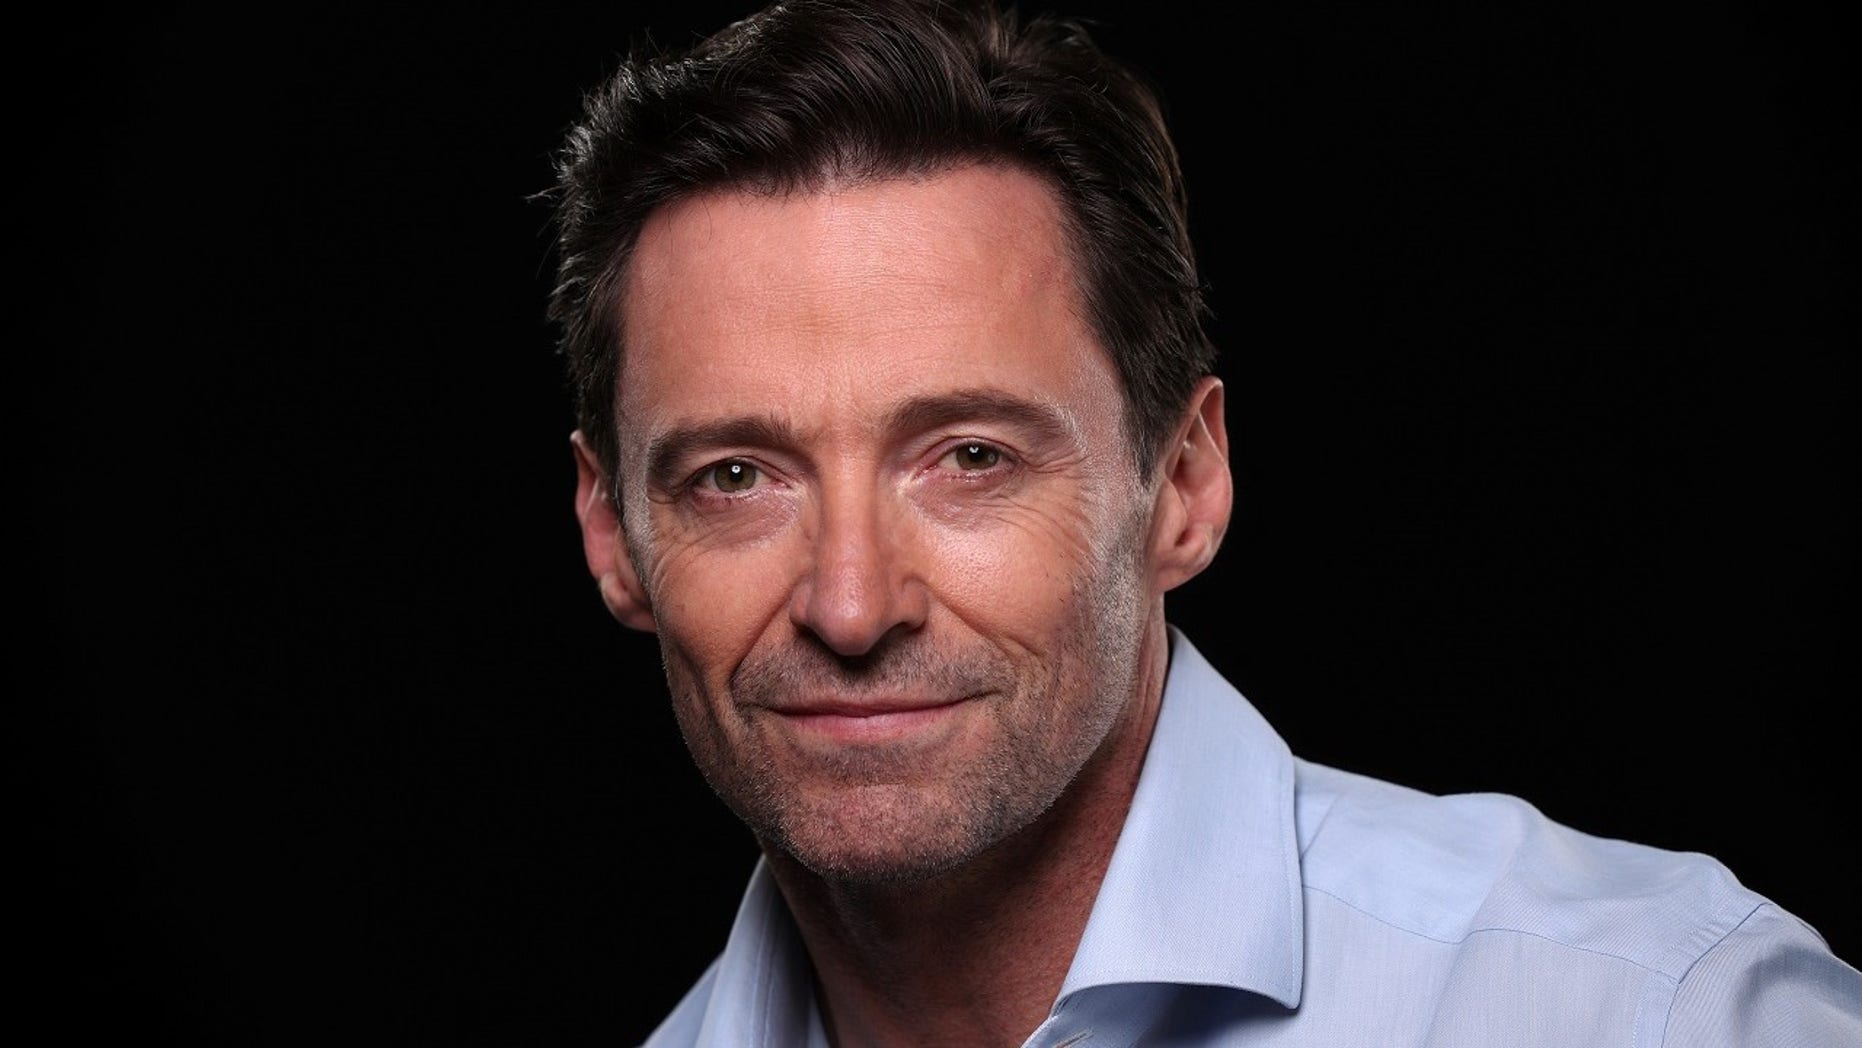 """Hugh Jackman said he passed on the James Bond role because the scripts were """"so unbelievable and crazy."""""""